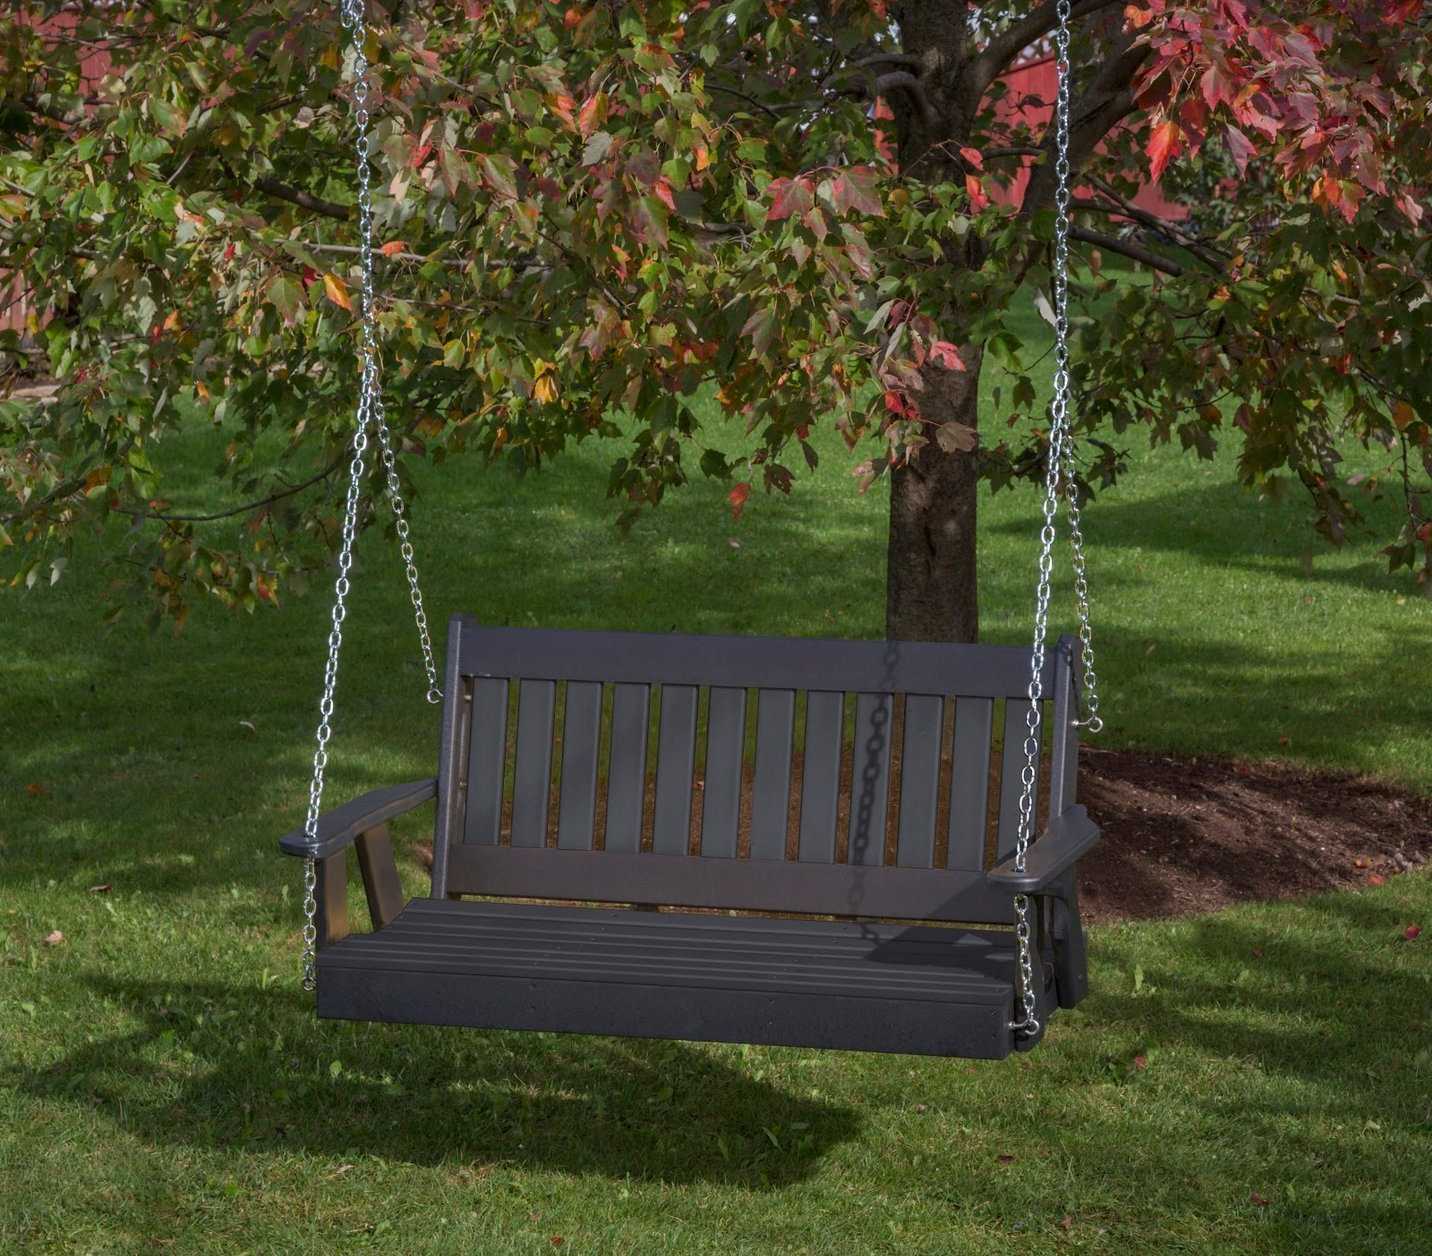 Preferred Ecommersify Inc 5ft Black Poly Lumber Mission Porch Swing Heavy Duty Everlasting Polytuf Hdpe – Made In Usa – Amish Crafted Intended For Outdoor Furniture yacht Club 2 Person Recycled Plastic Outdoor Swings (View 17 of 30)